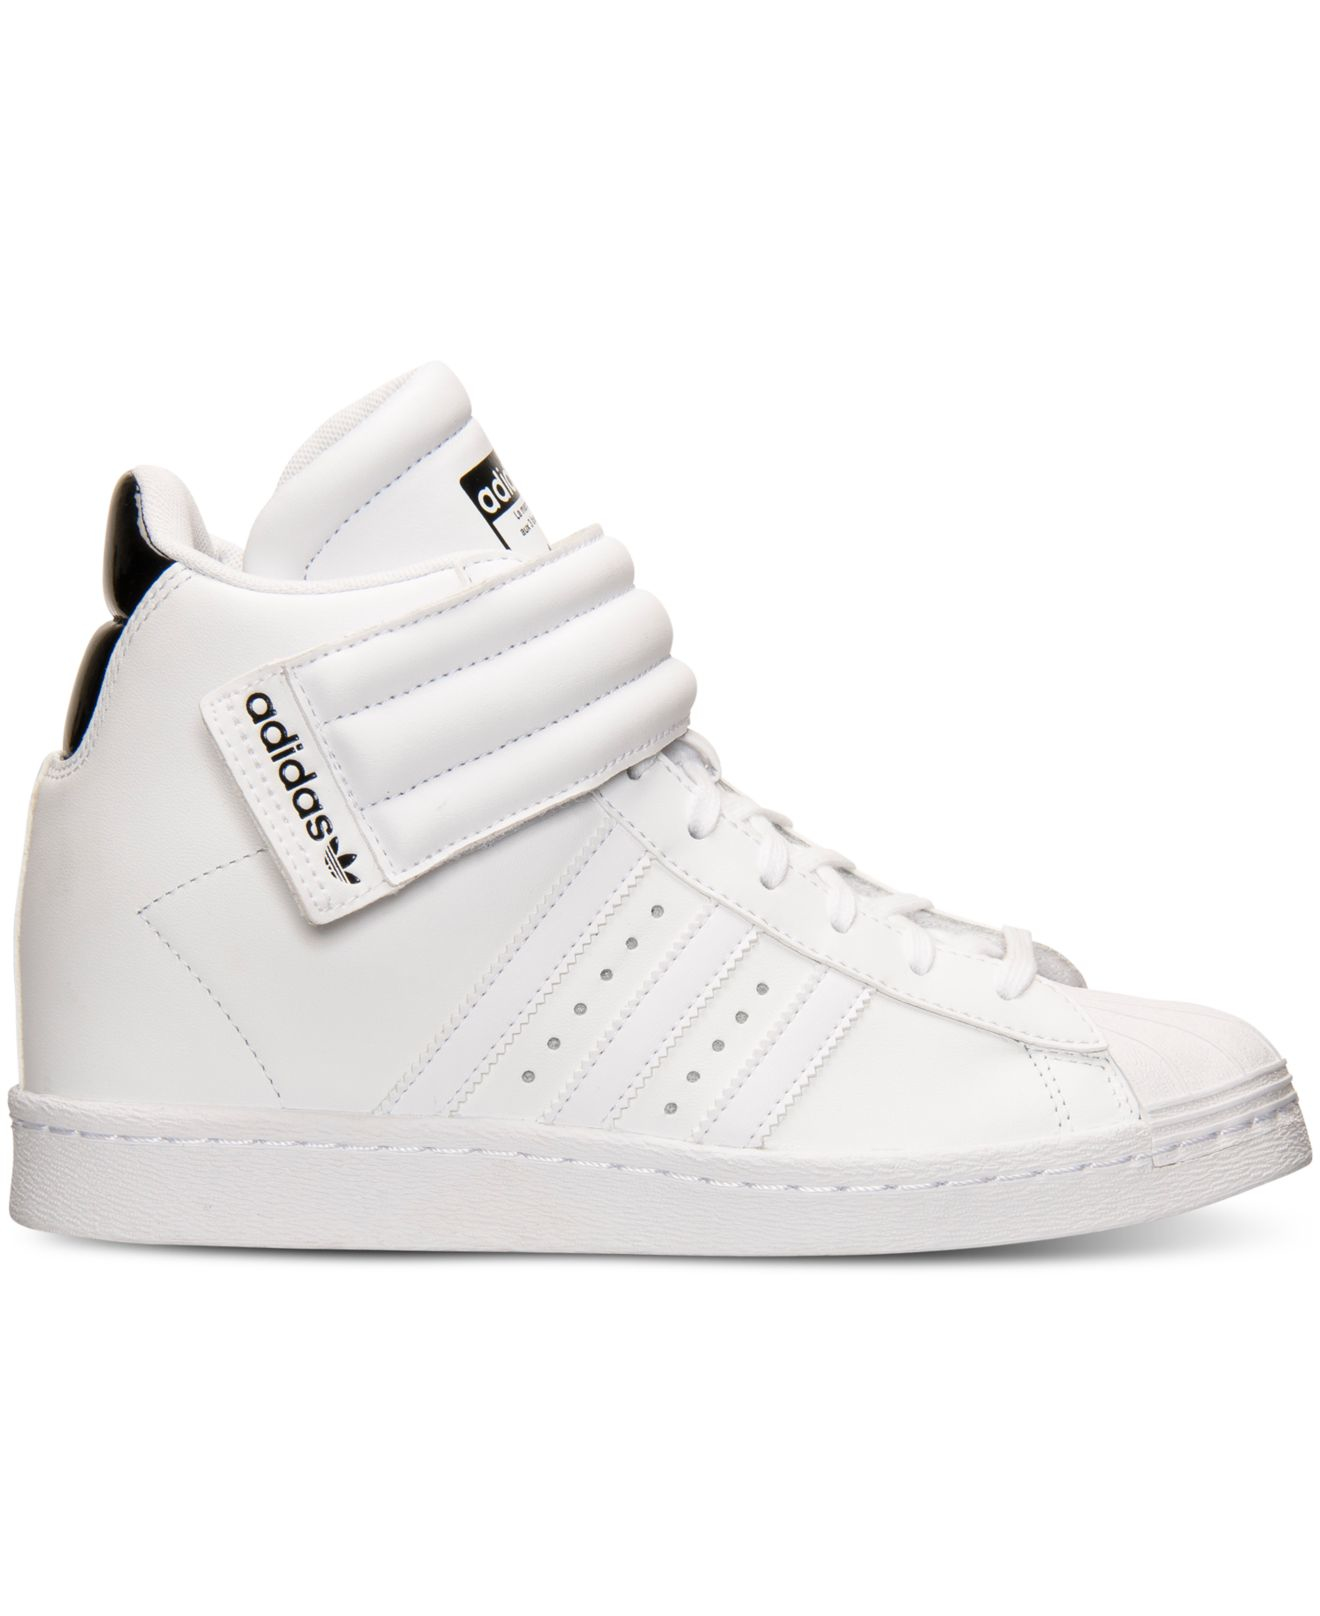 more photos bb202 2d643 Lyst - adidas Originals Womens Superstar Up Strap Casual Sne